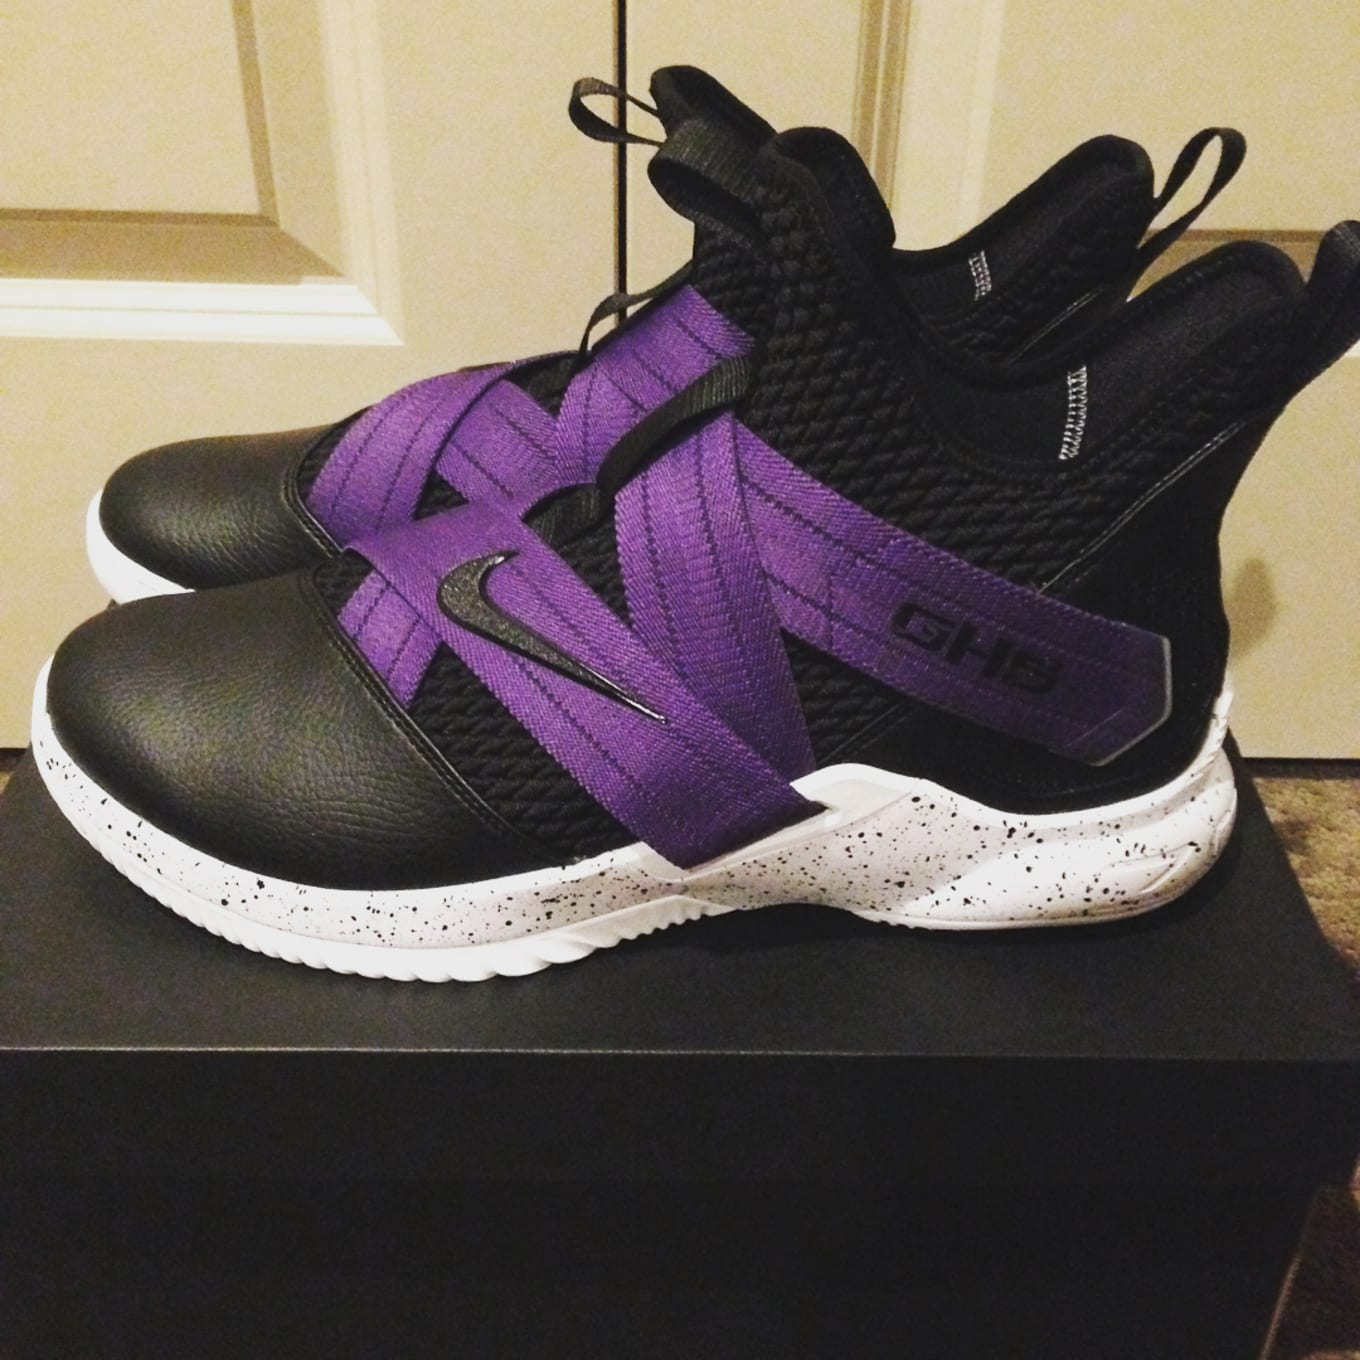 best sneakers 610b3 a0d68 NIKEiD LeBron Soldier 12 Designs | Sole Collector